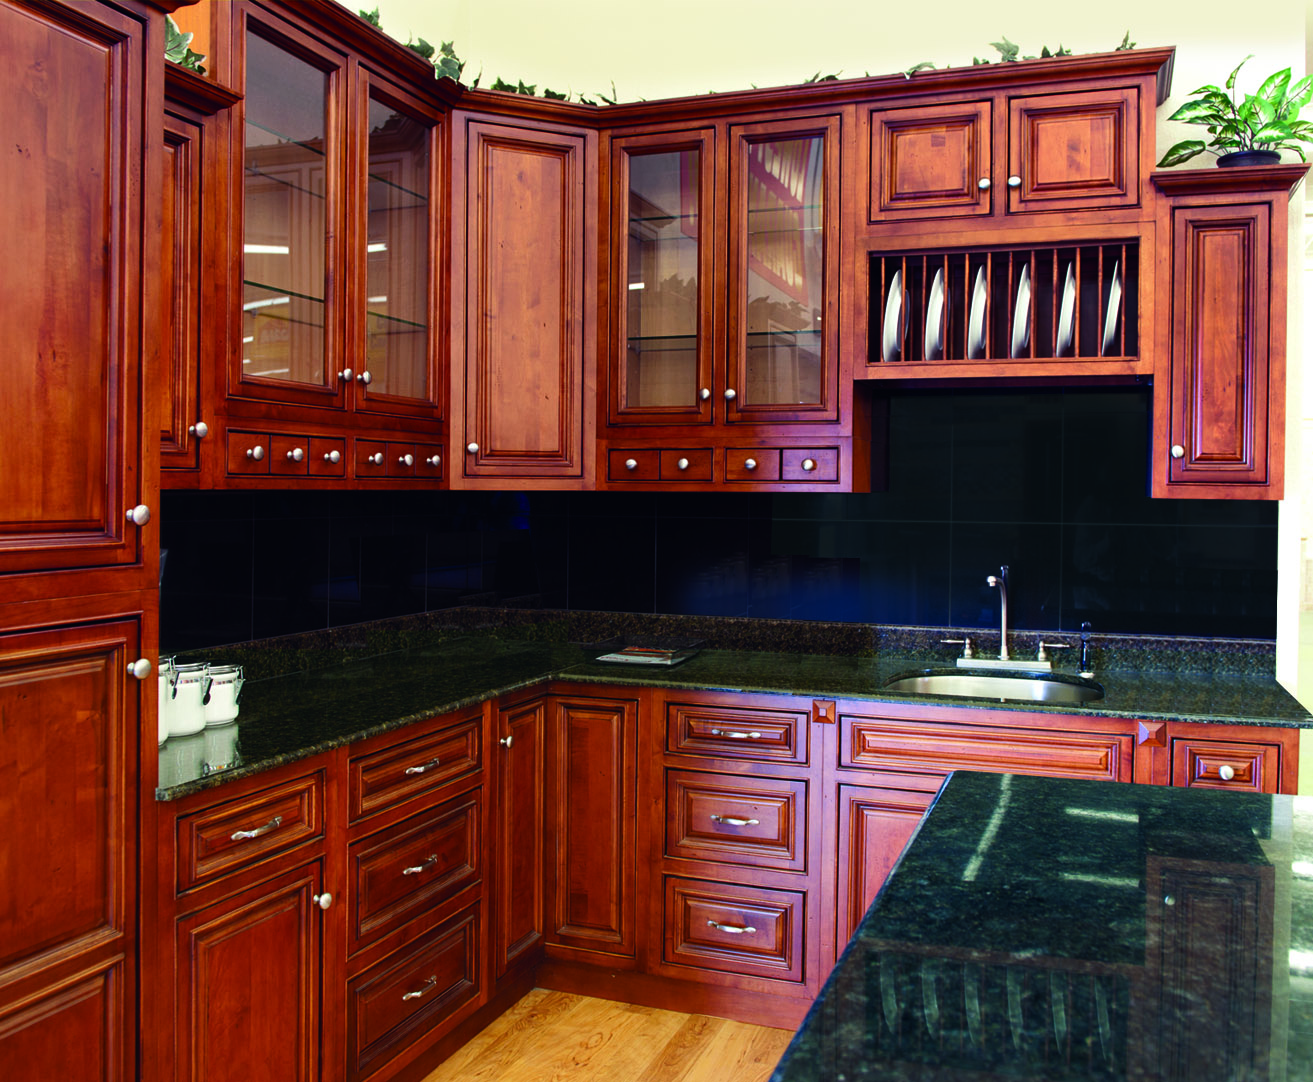 Seven Affordable Easy To Do Kitchen Facelift Ideas From